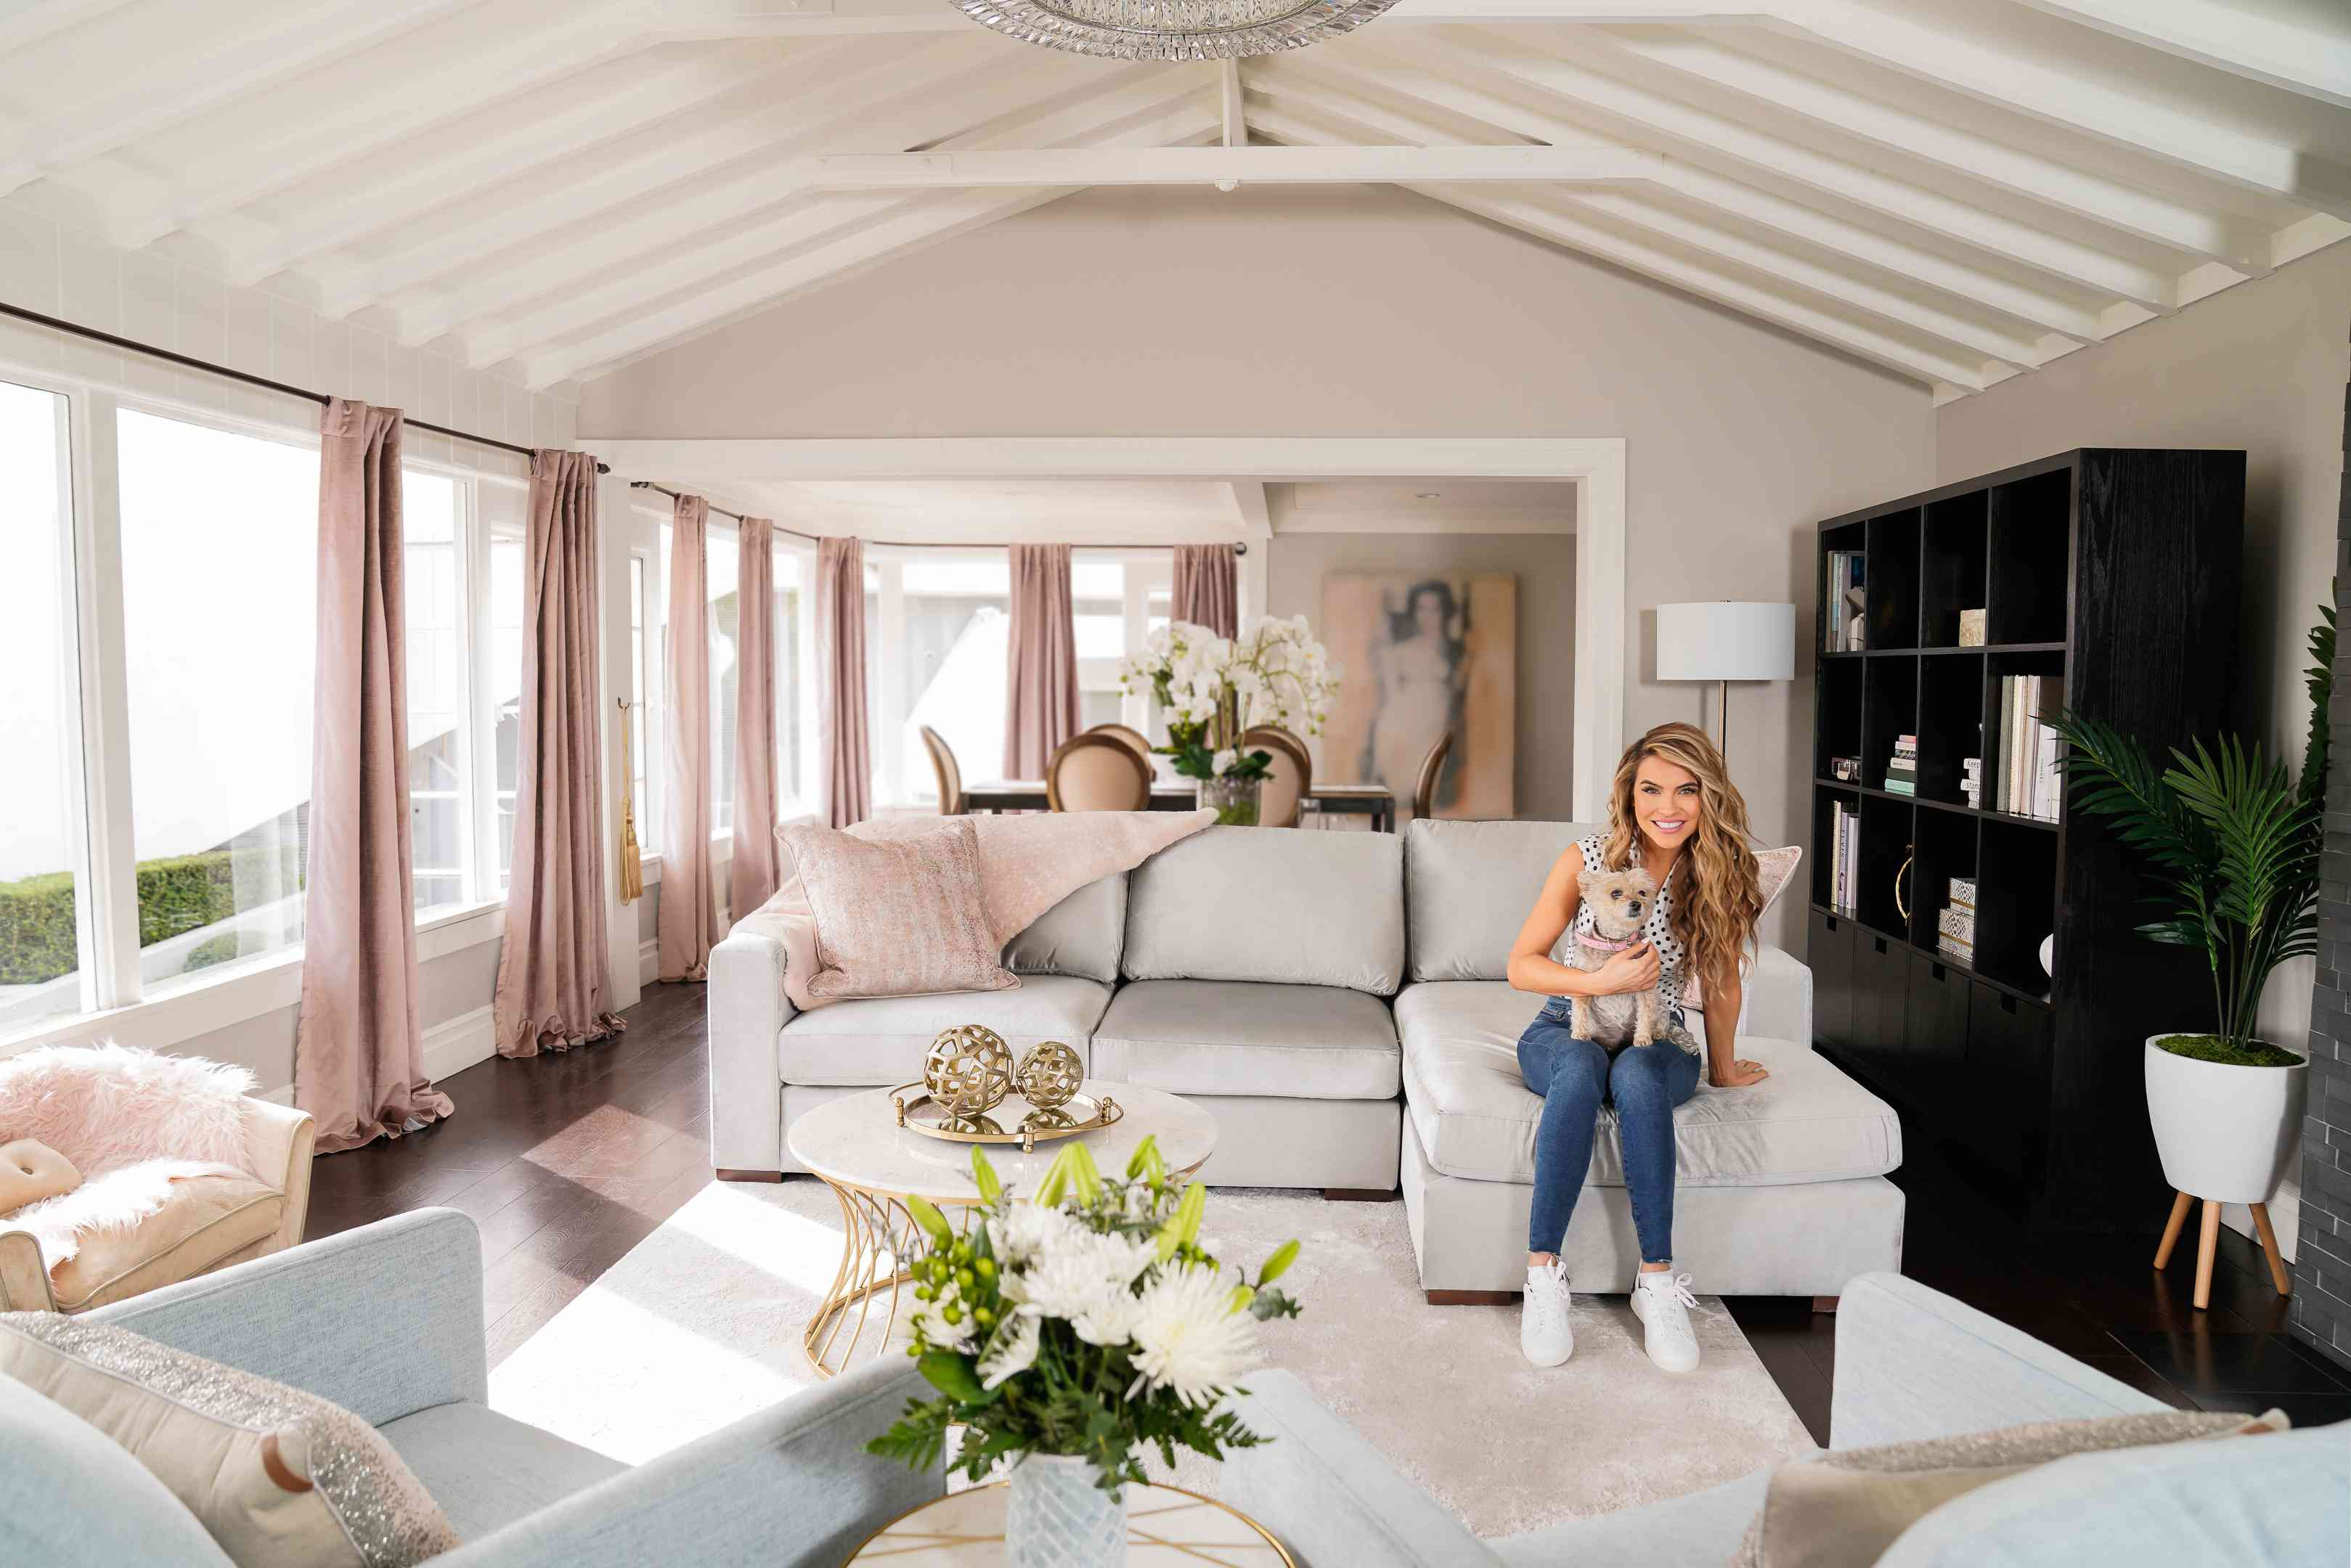 Chrishell Stause poses with her dog in her newly redecorated living room that features updates from TJMaxx and Marshalls